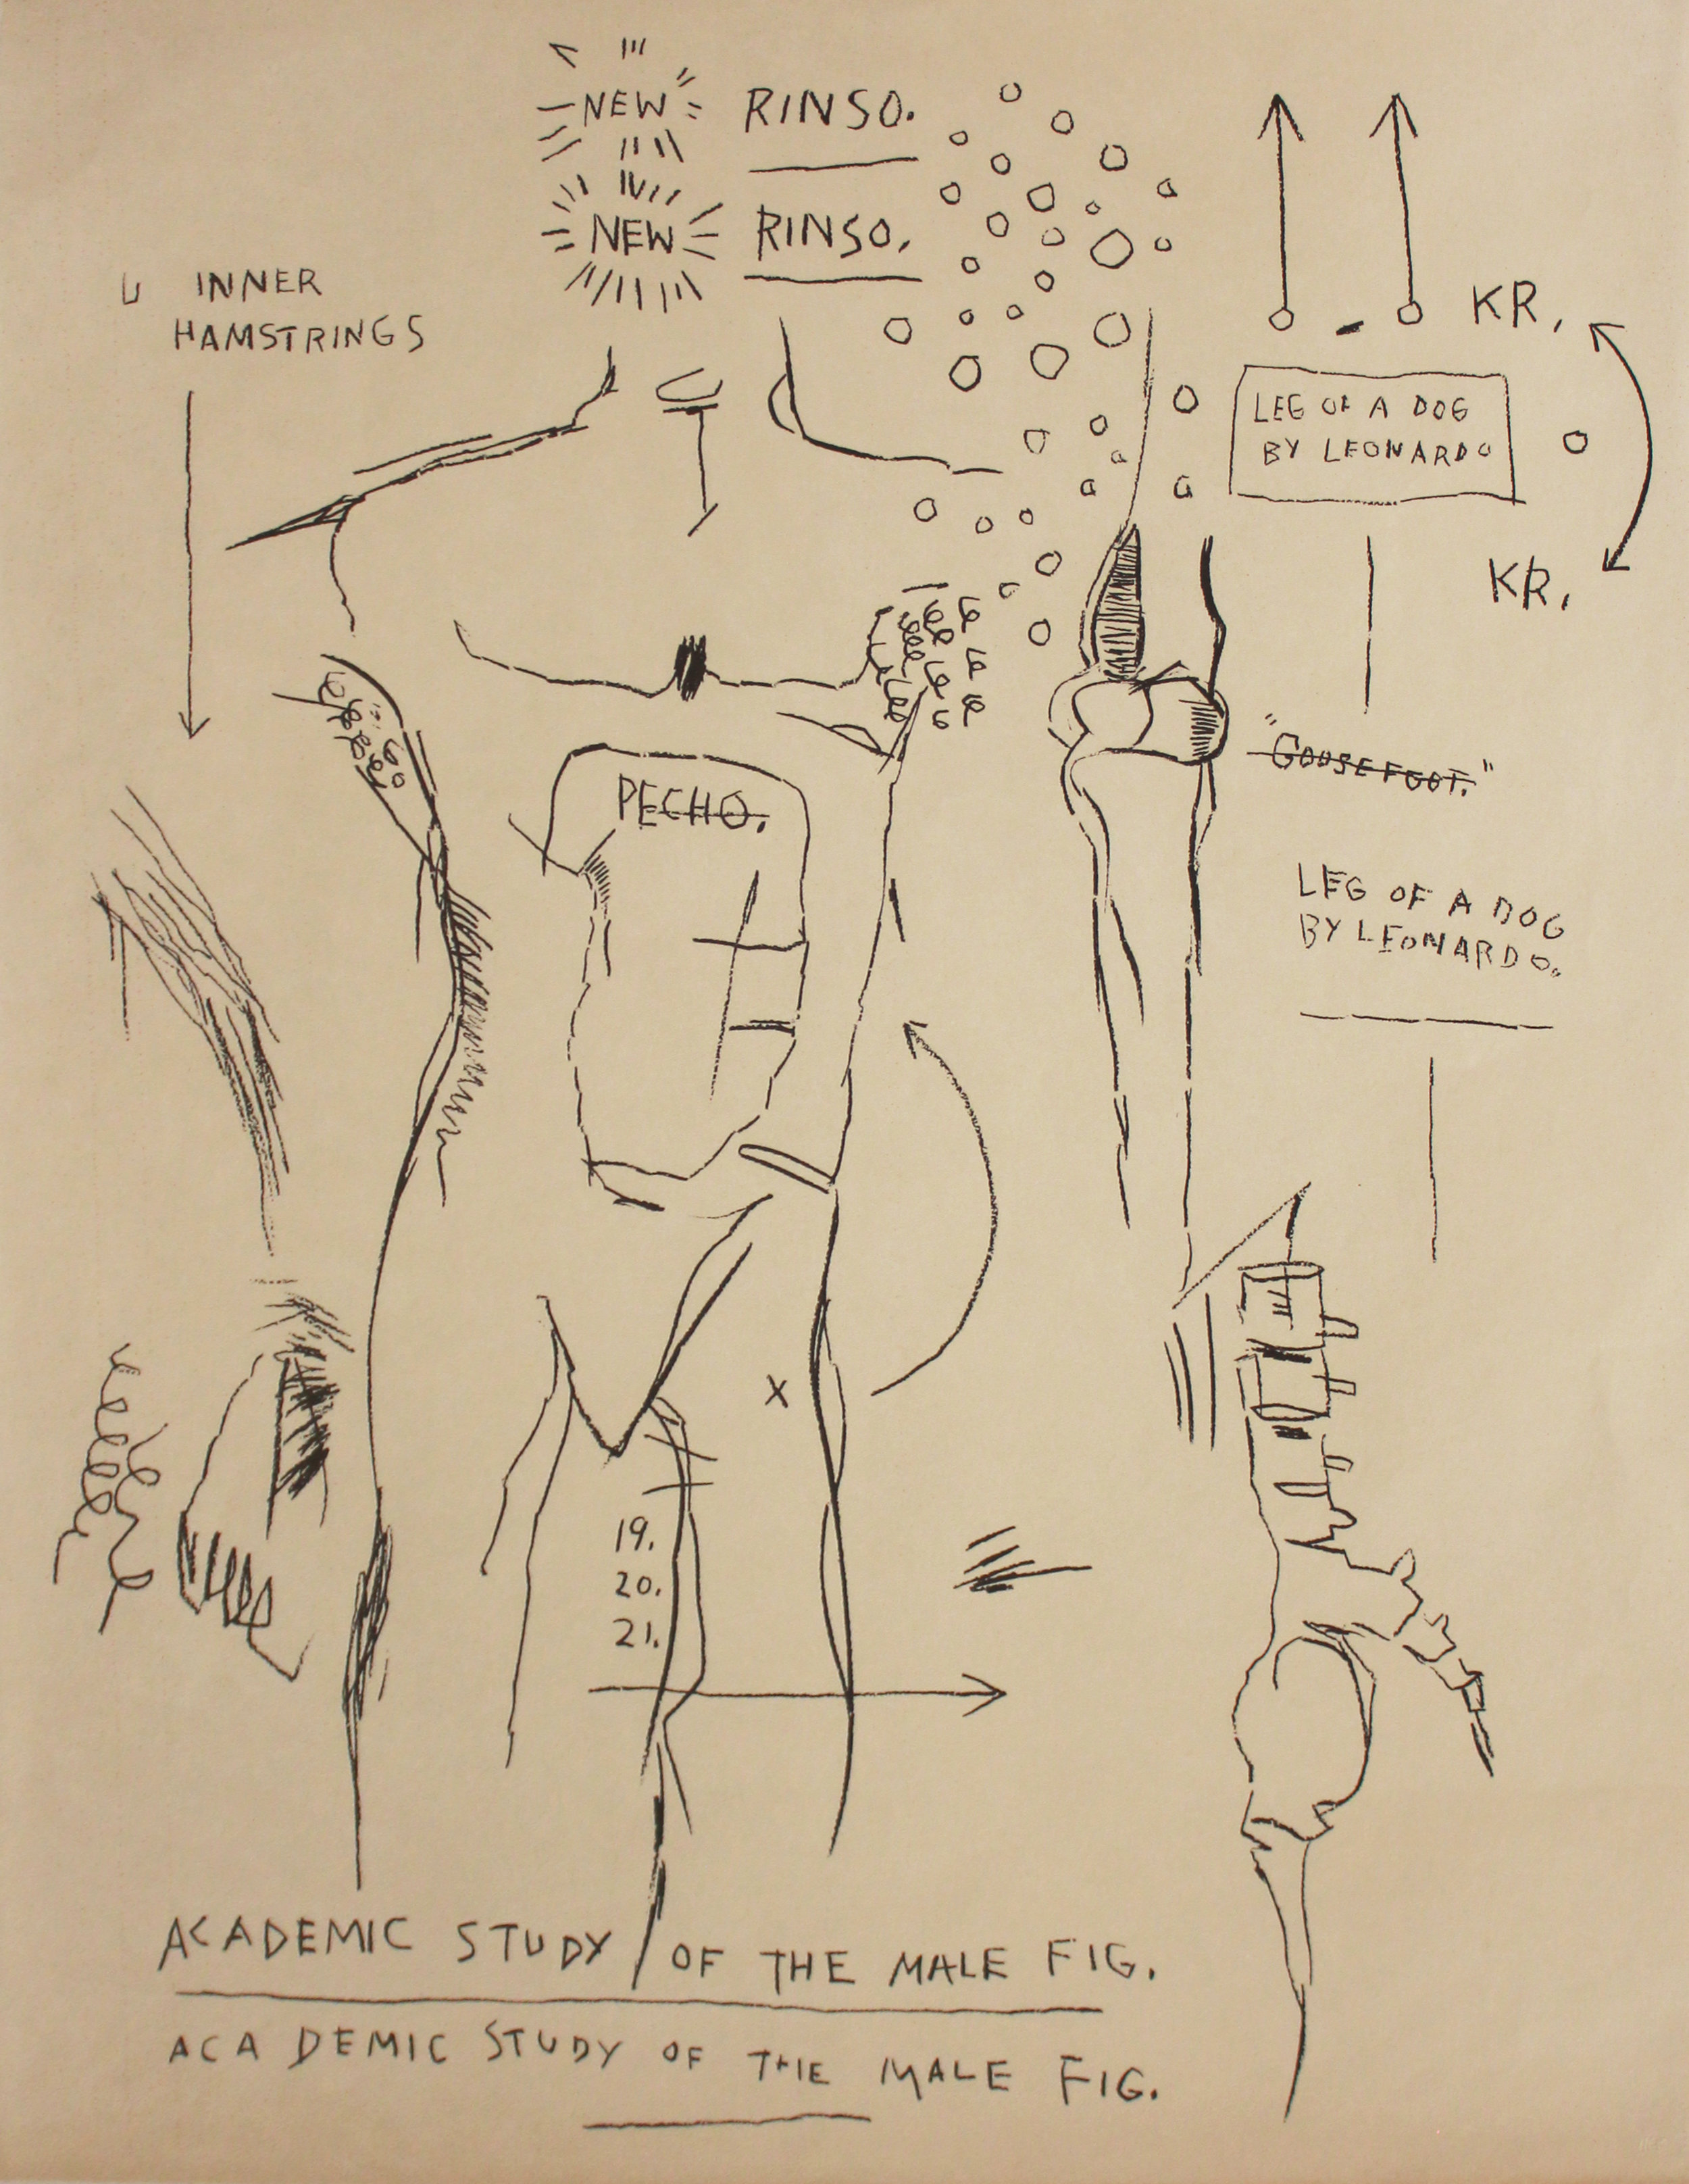 Jean-Michel Basquiat (1960-1988)   Academic Study of the Male Figure , 1983 Silkscreen on Okawara rice paper Unsigned printers proof; New City Editions, Venice, CA blindstamp lower right Sheet: 40 x 31 inches; Framed: 47 x 38 inches Estimate: $8,000/$12,000